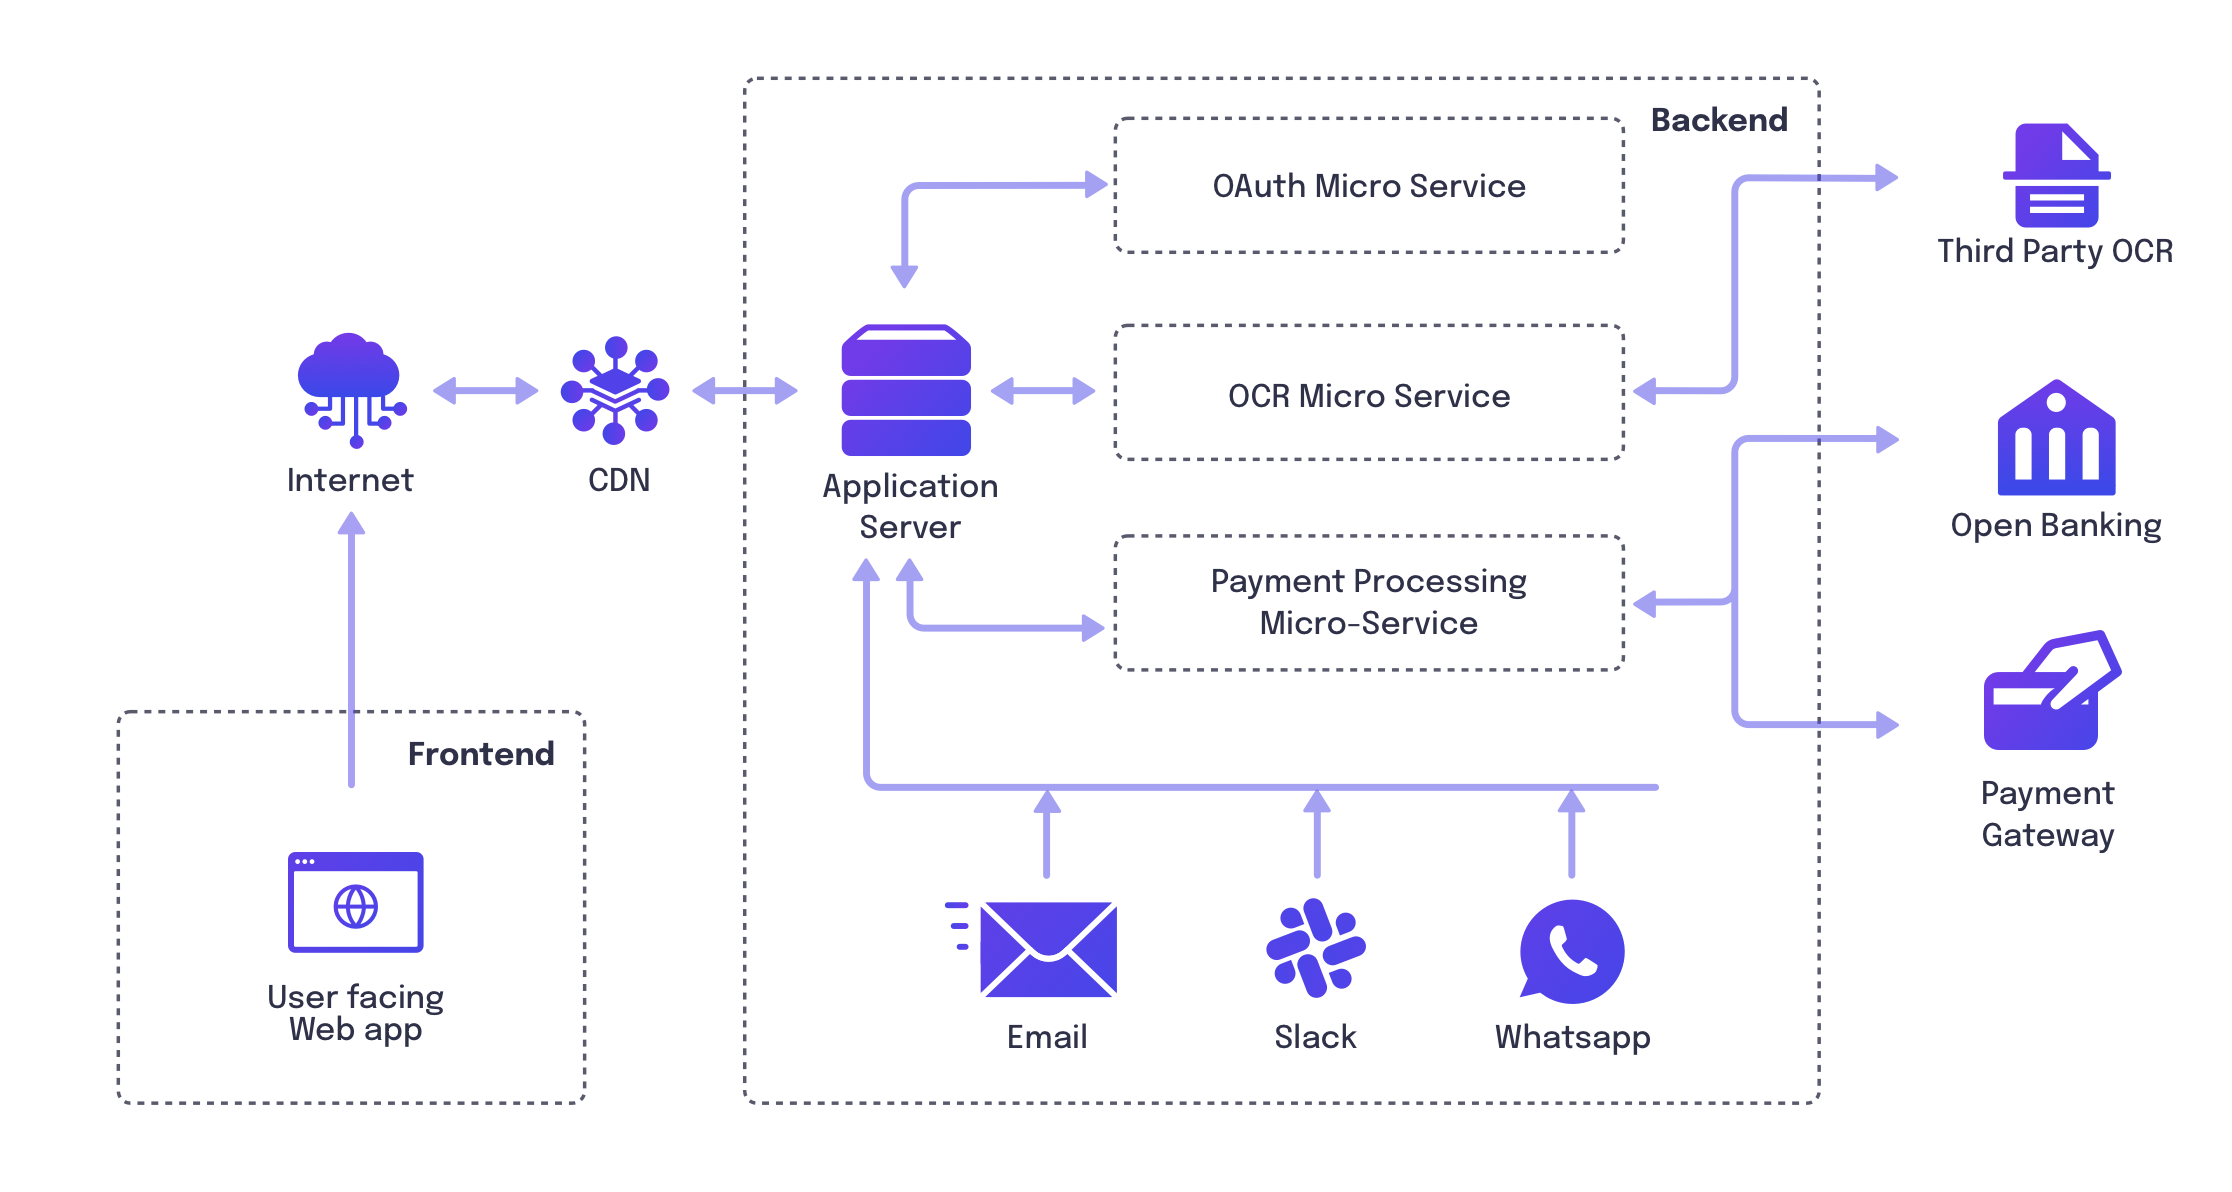 System architecture diagram of a Multi-Tenant Invoice payment solution that uses OCR and multiple payment methods